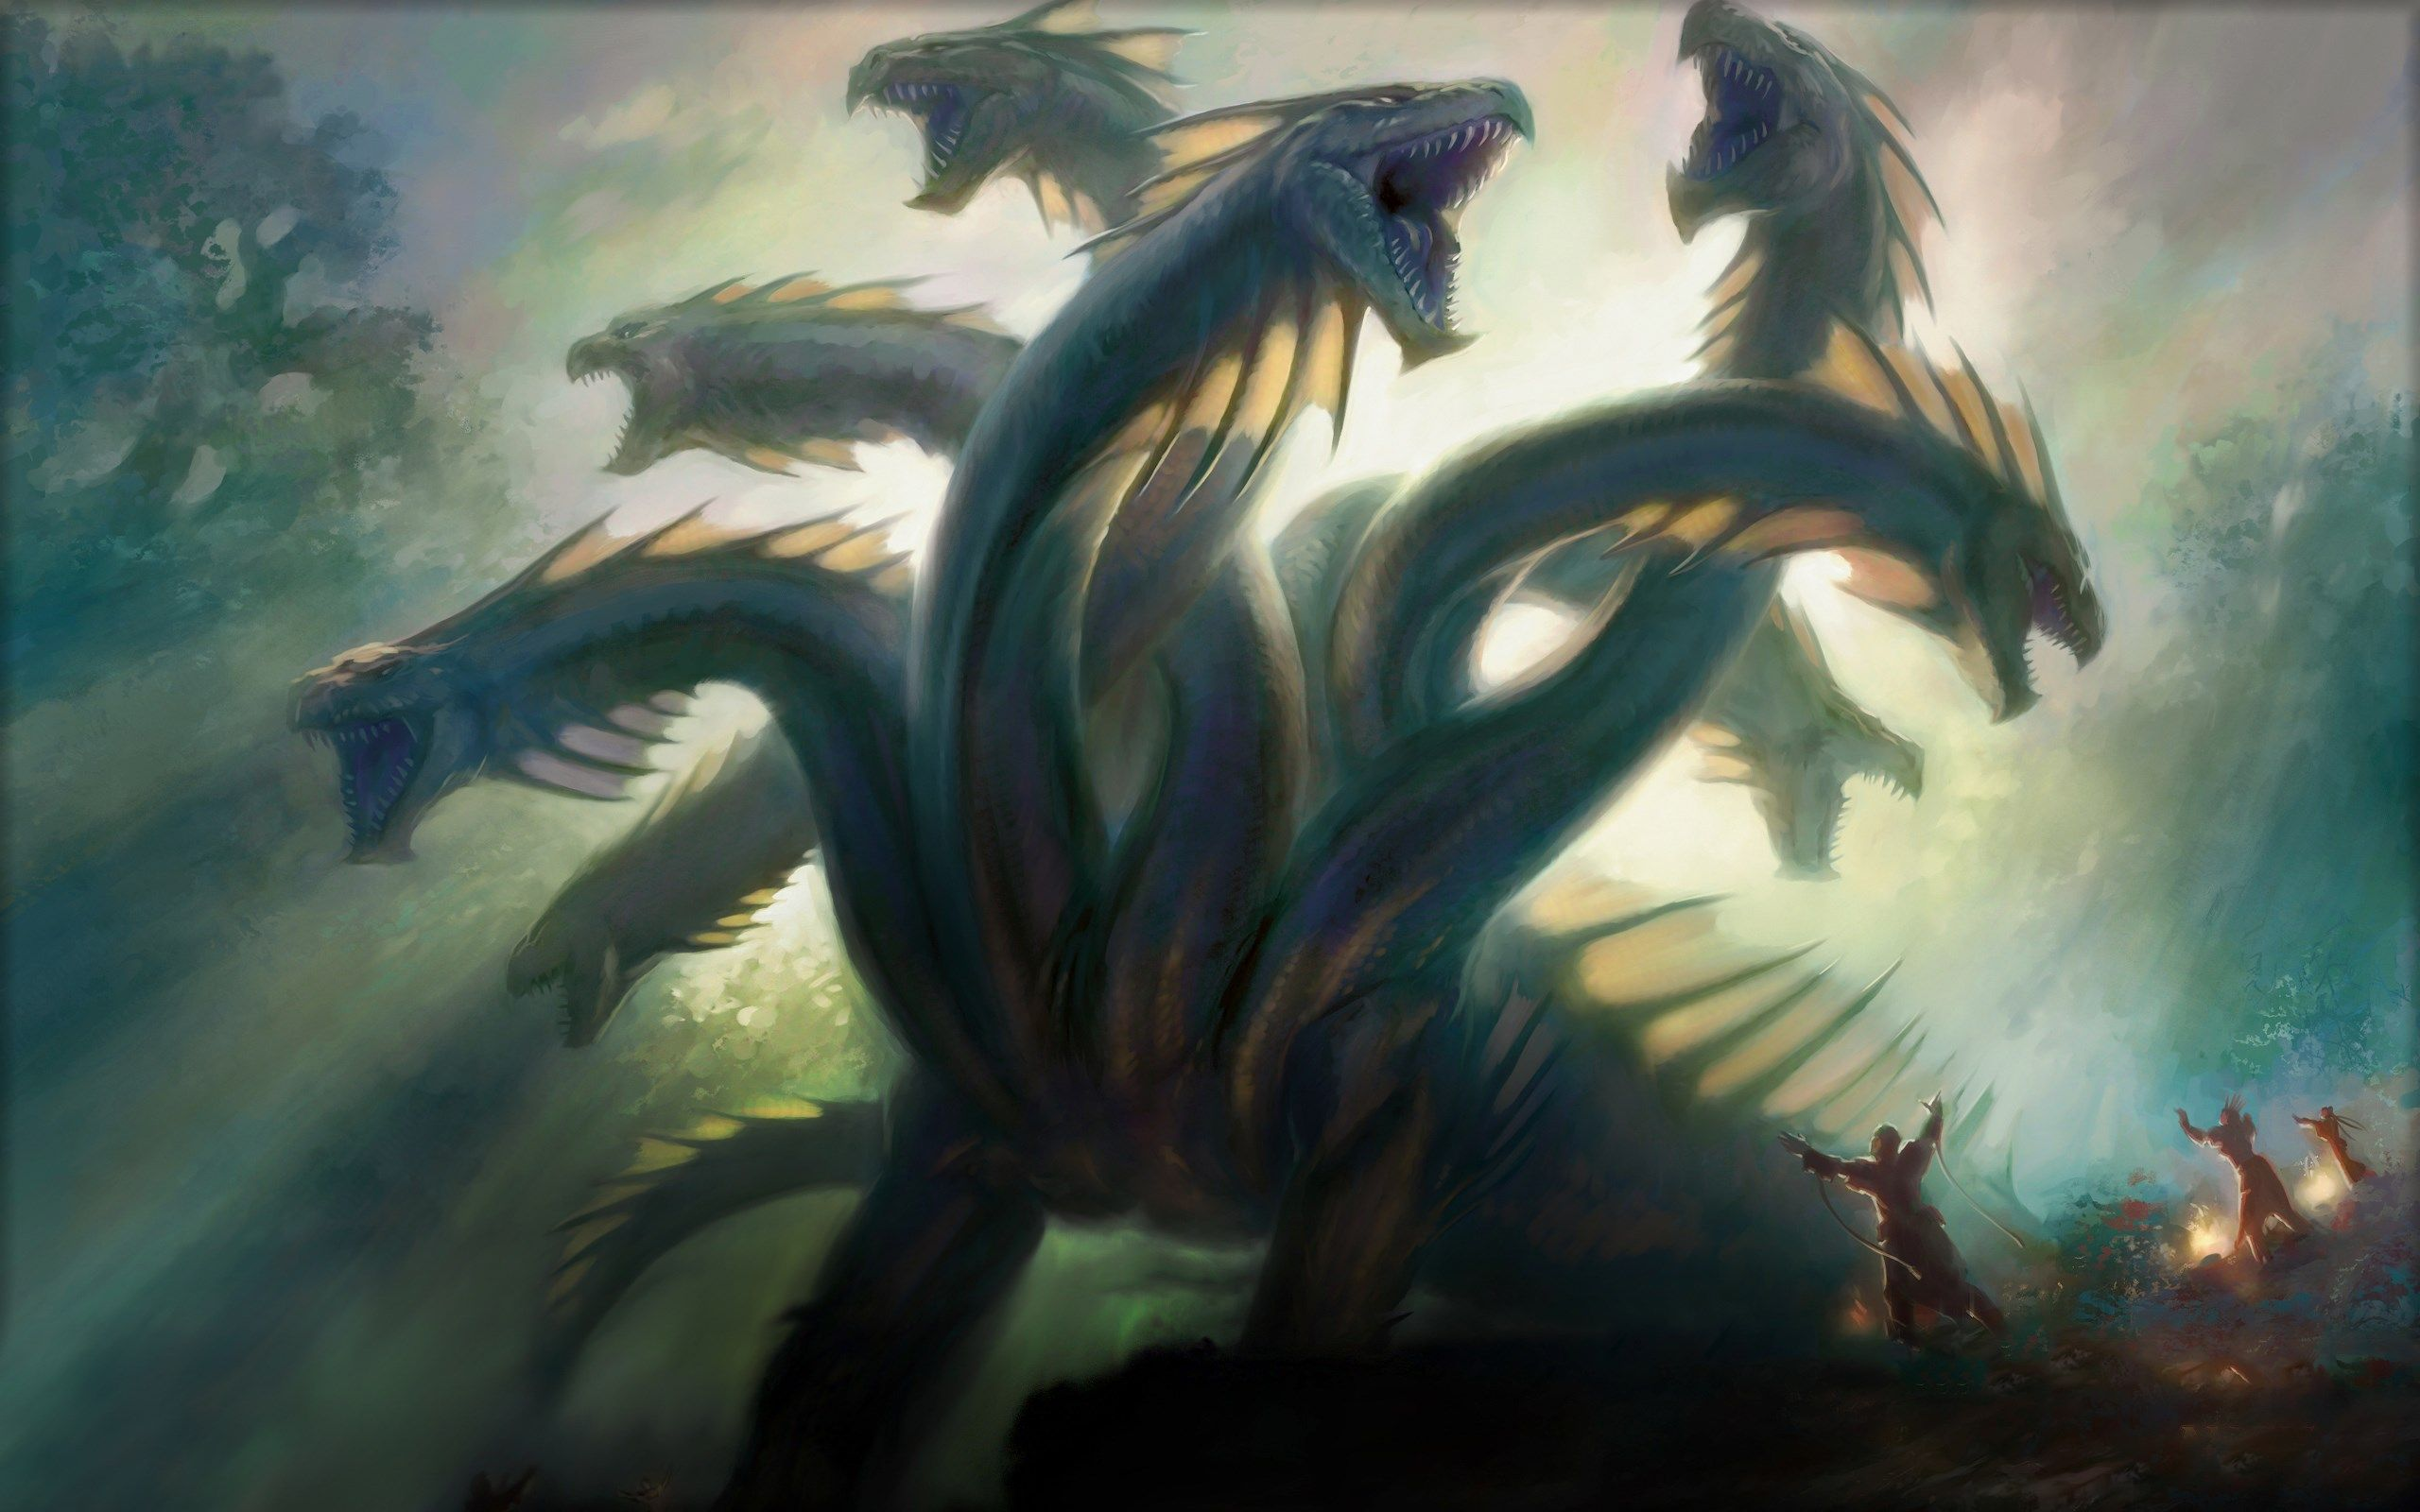 Walton Waite Wallpapers Free Magic The Gathering 2560x1600 Px Mythological Creatures Fantasy Artist Hydra Mythology